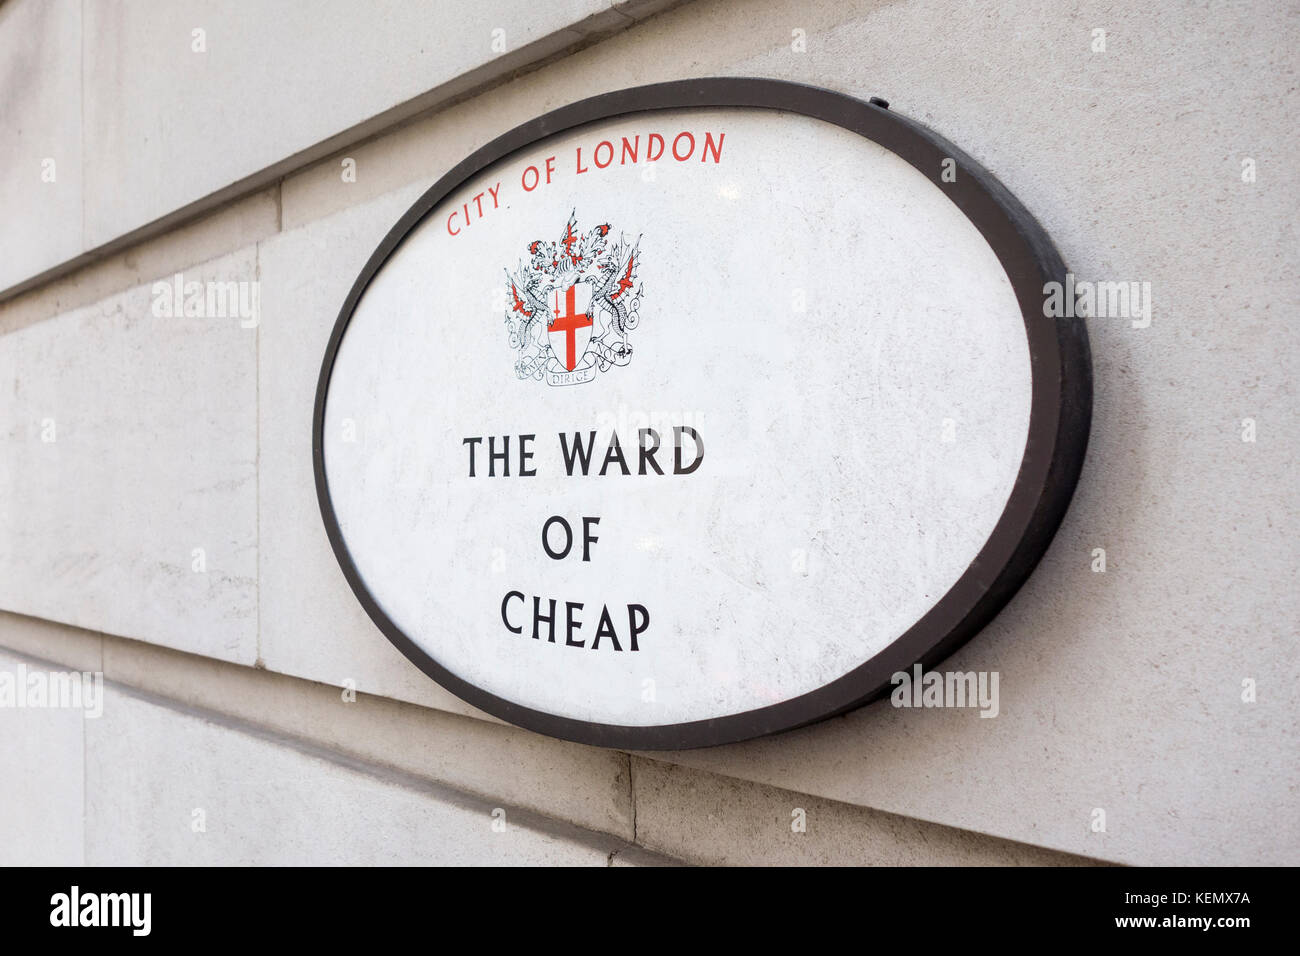 Sign for The Ward of Cheap, City of London, UK - Stock Image